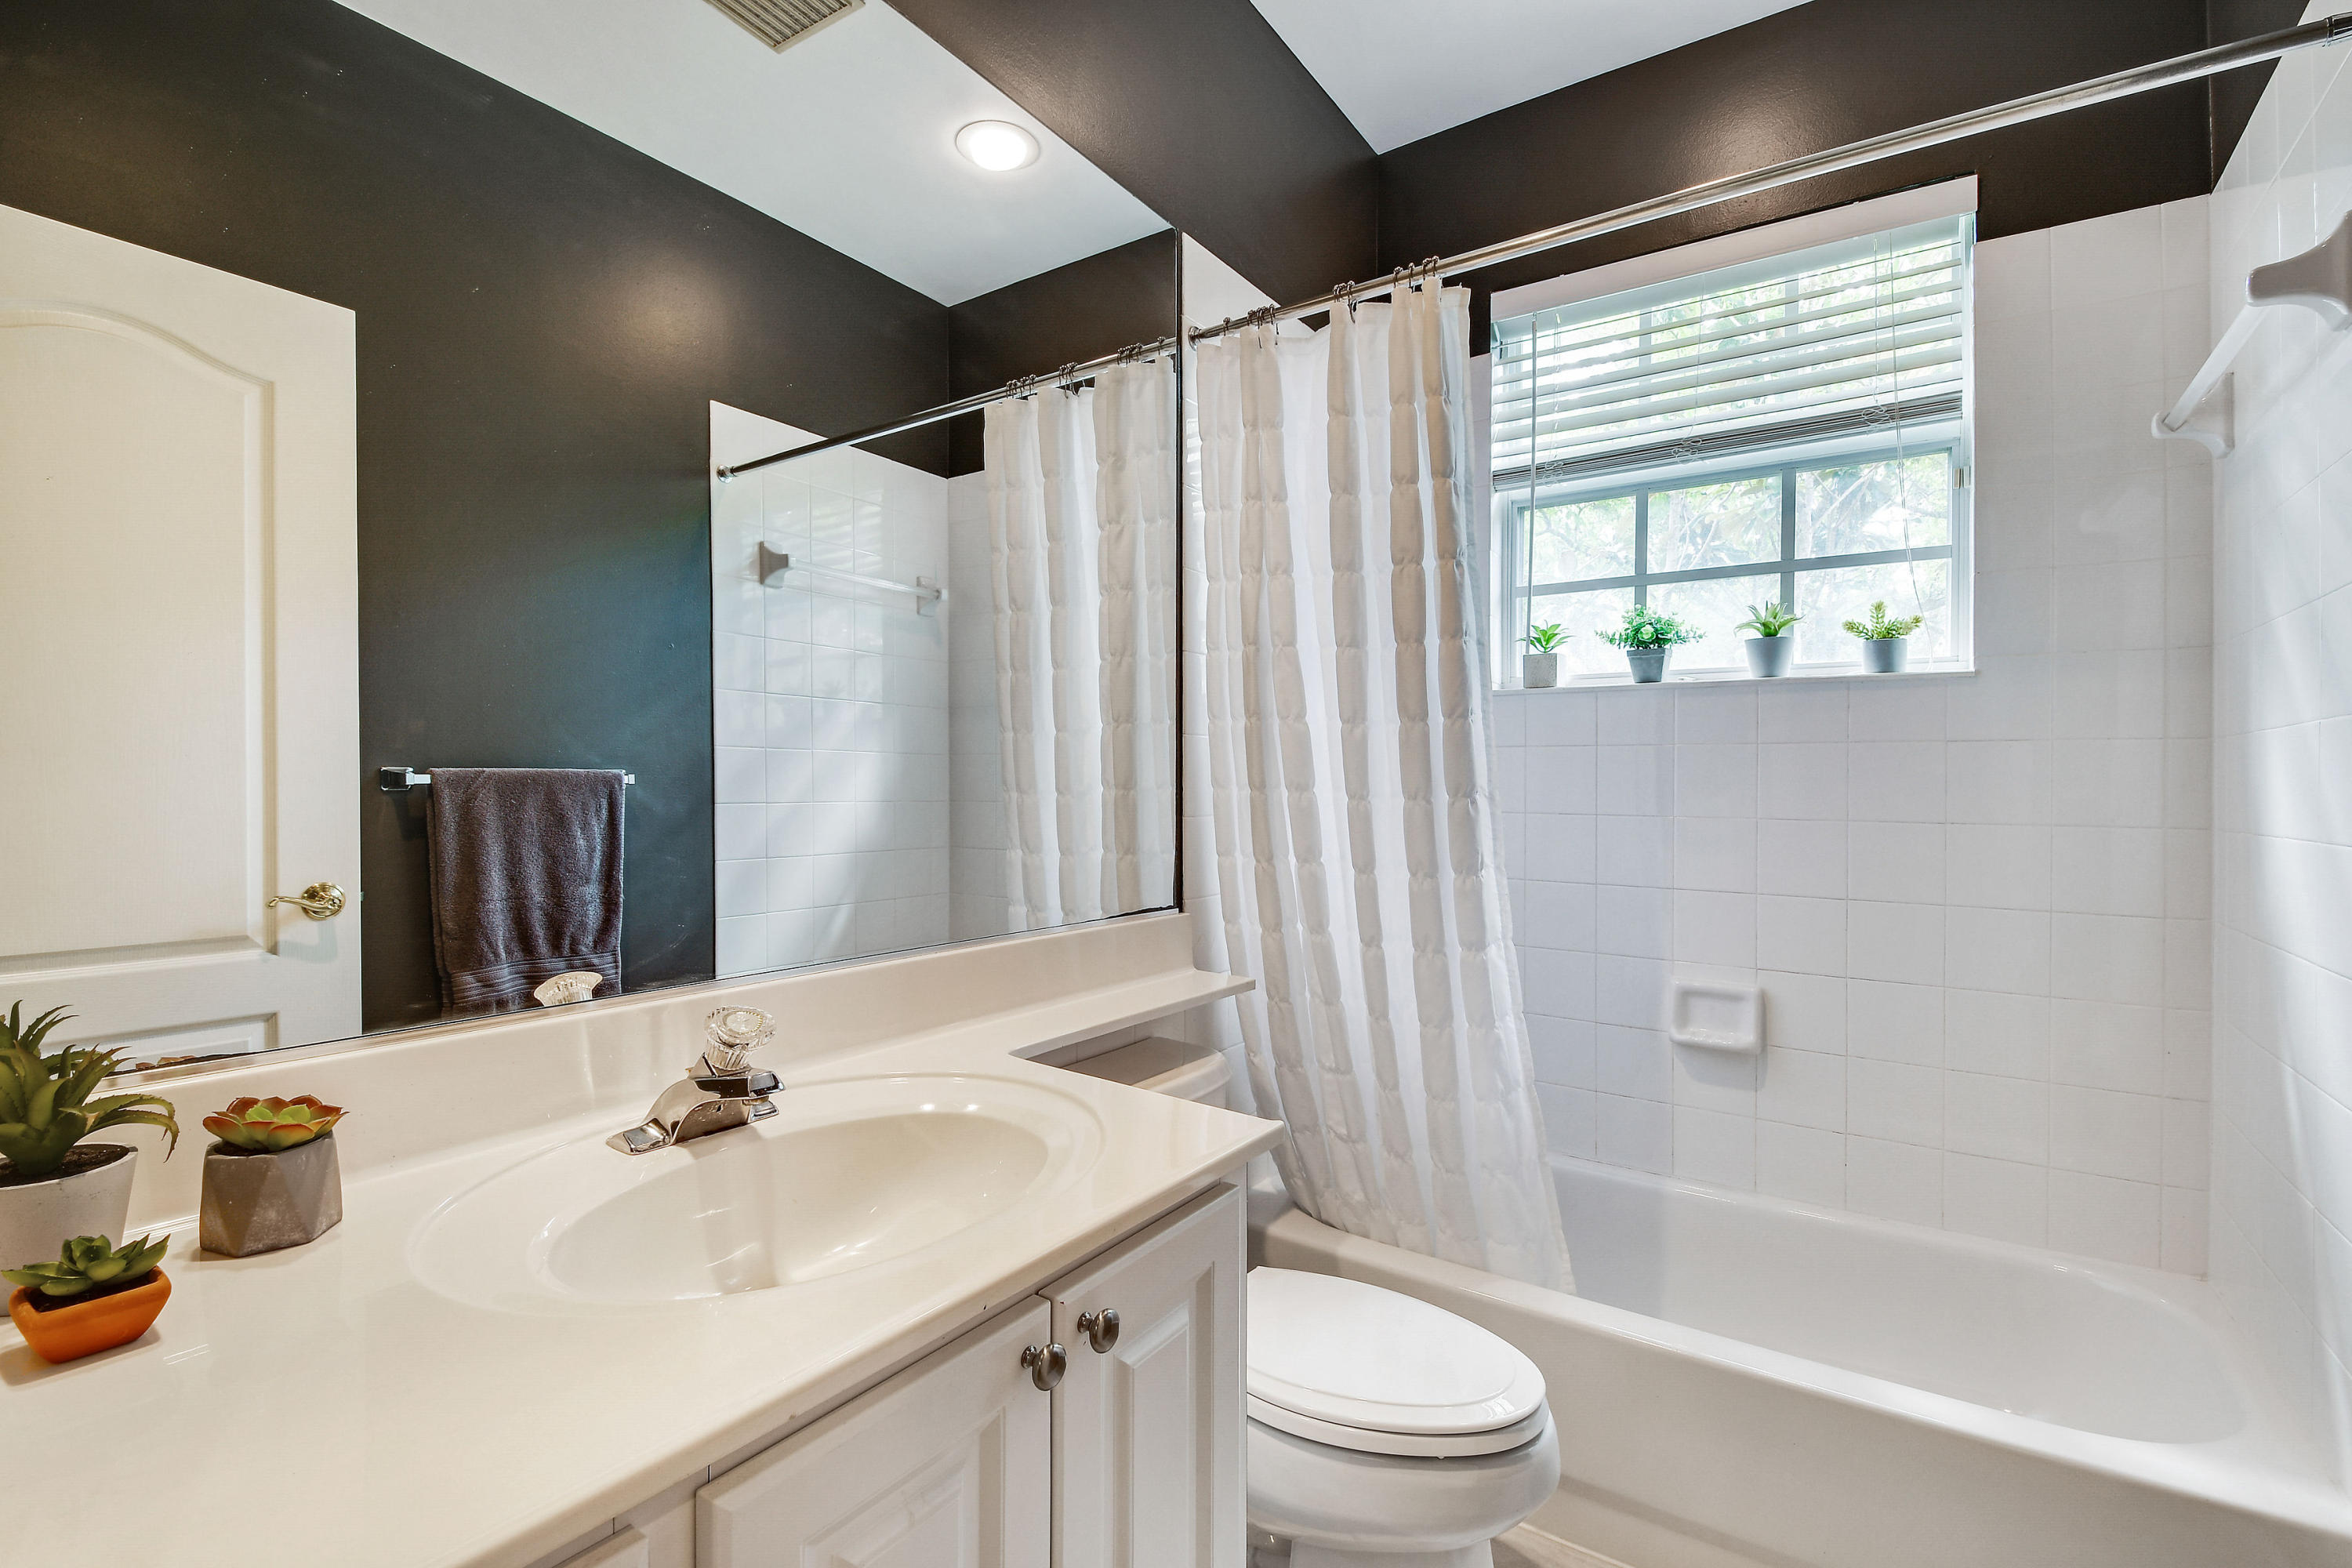 146 Day Lily Drive  - Abacoa Homes - photo 27